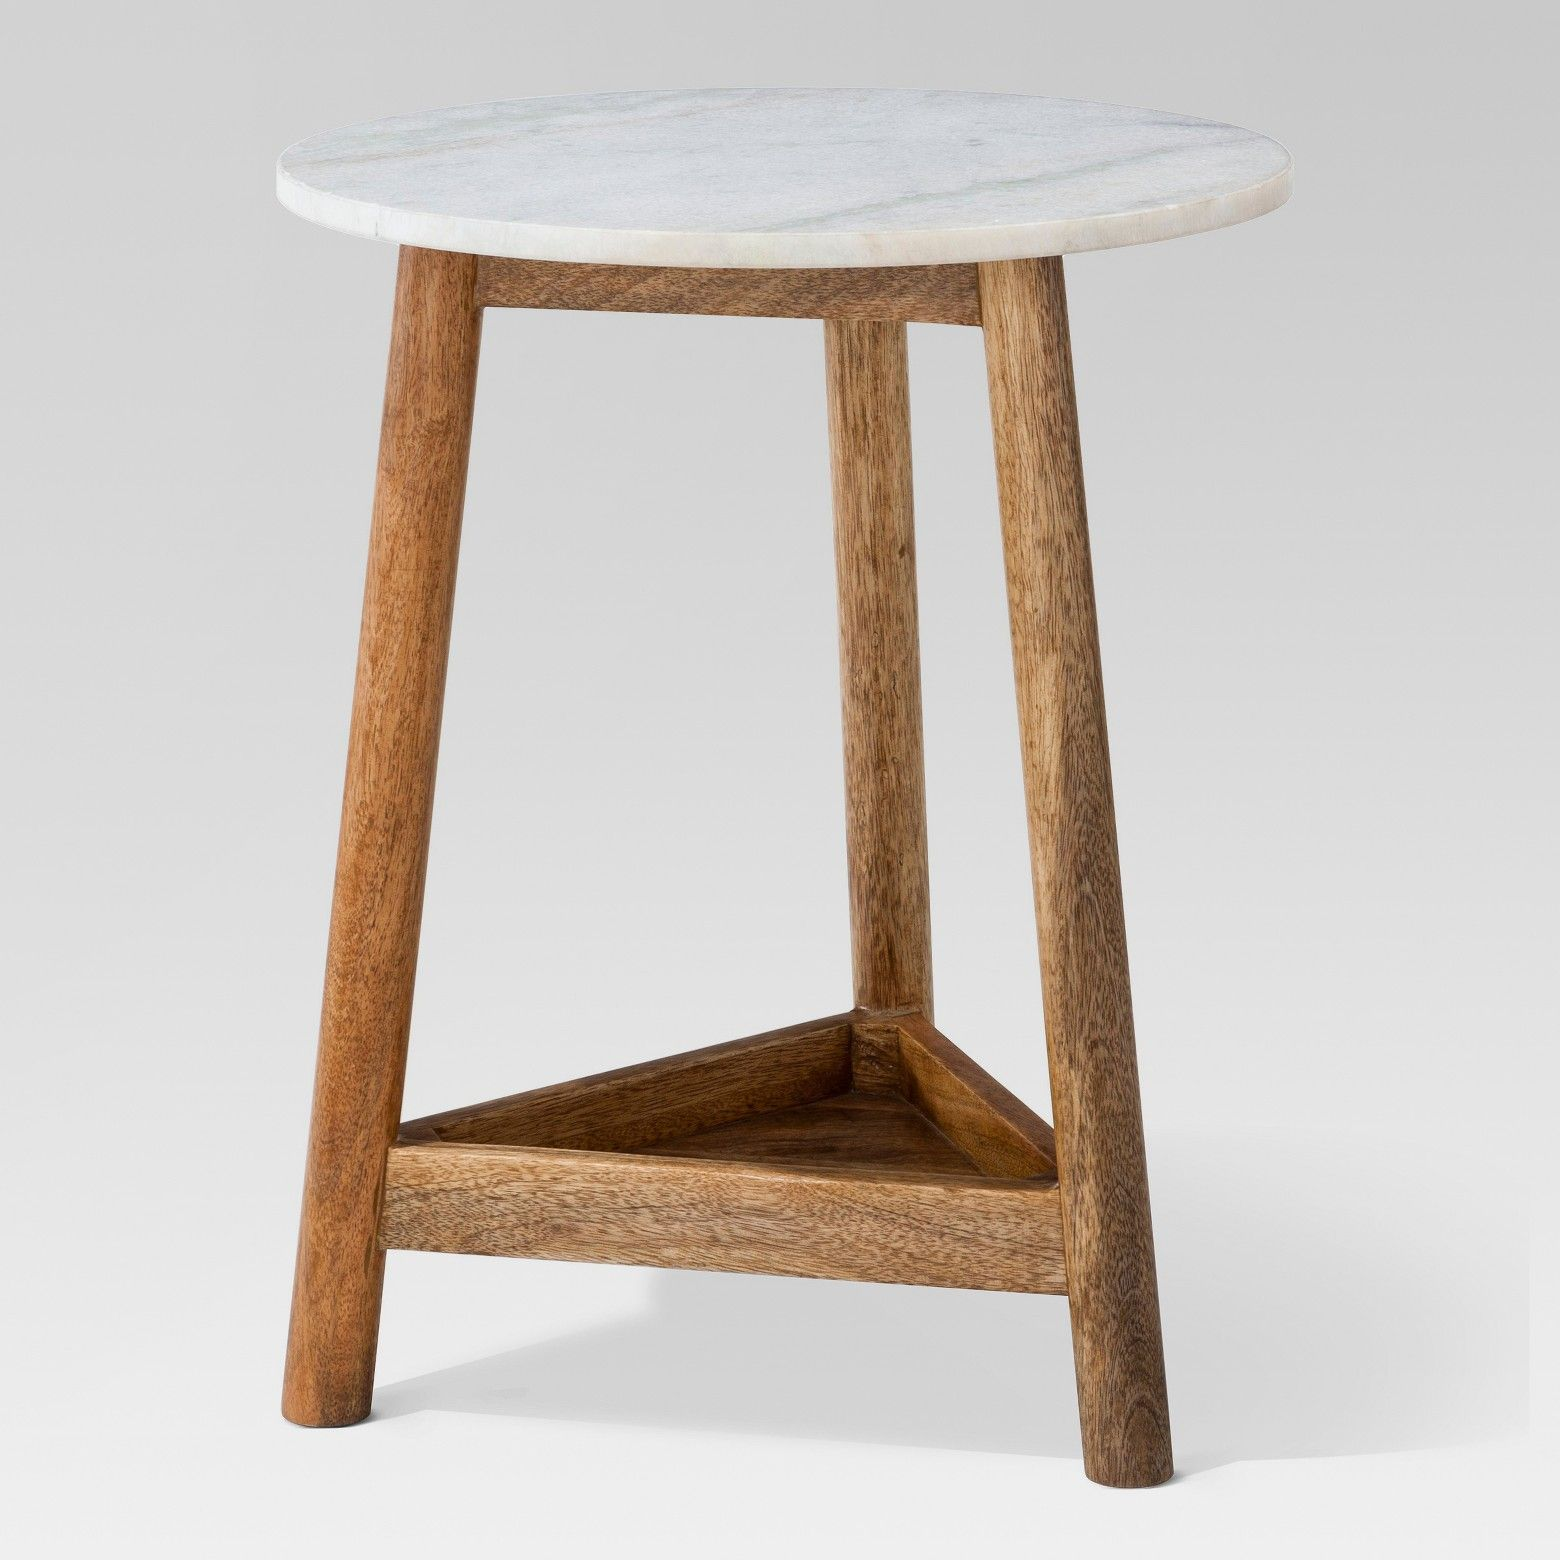 the lanham marble top side table from threshold has beautiful accent blend mango wood and instantly becoming focal point any room you place cabinet pine furniture sheesham console